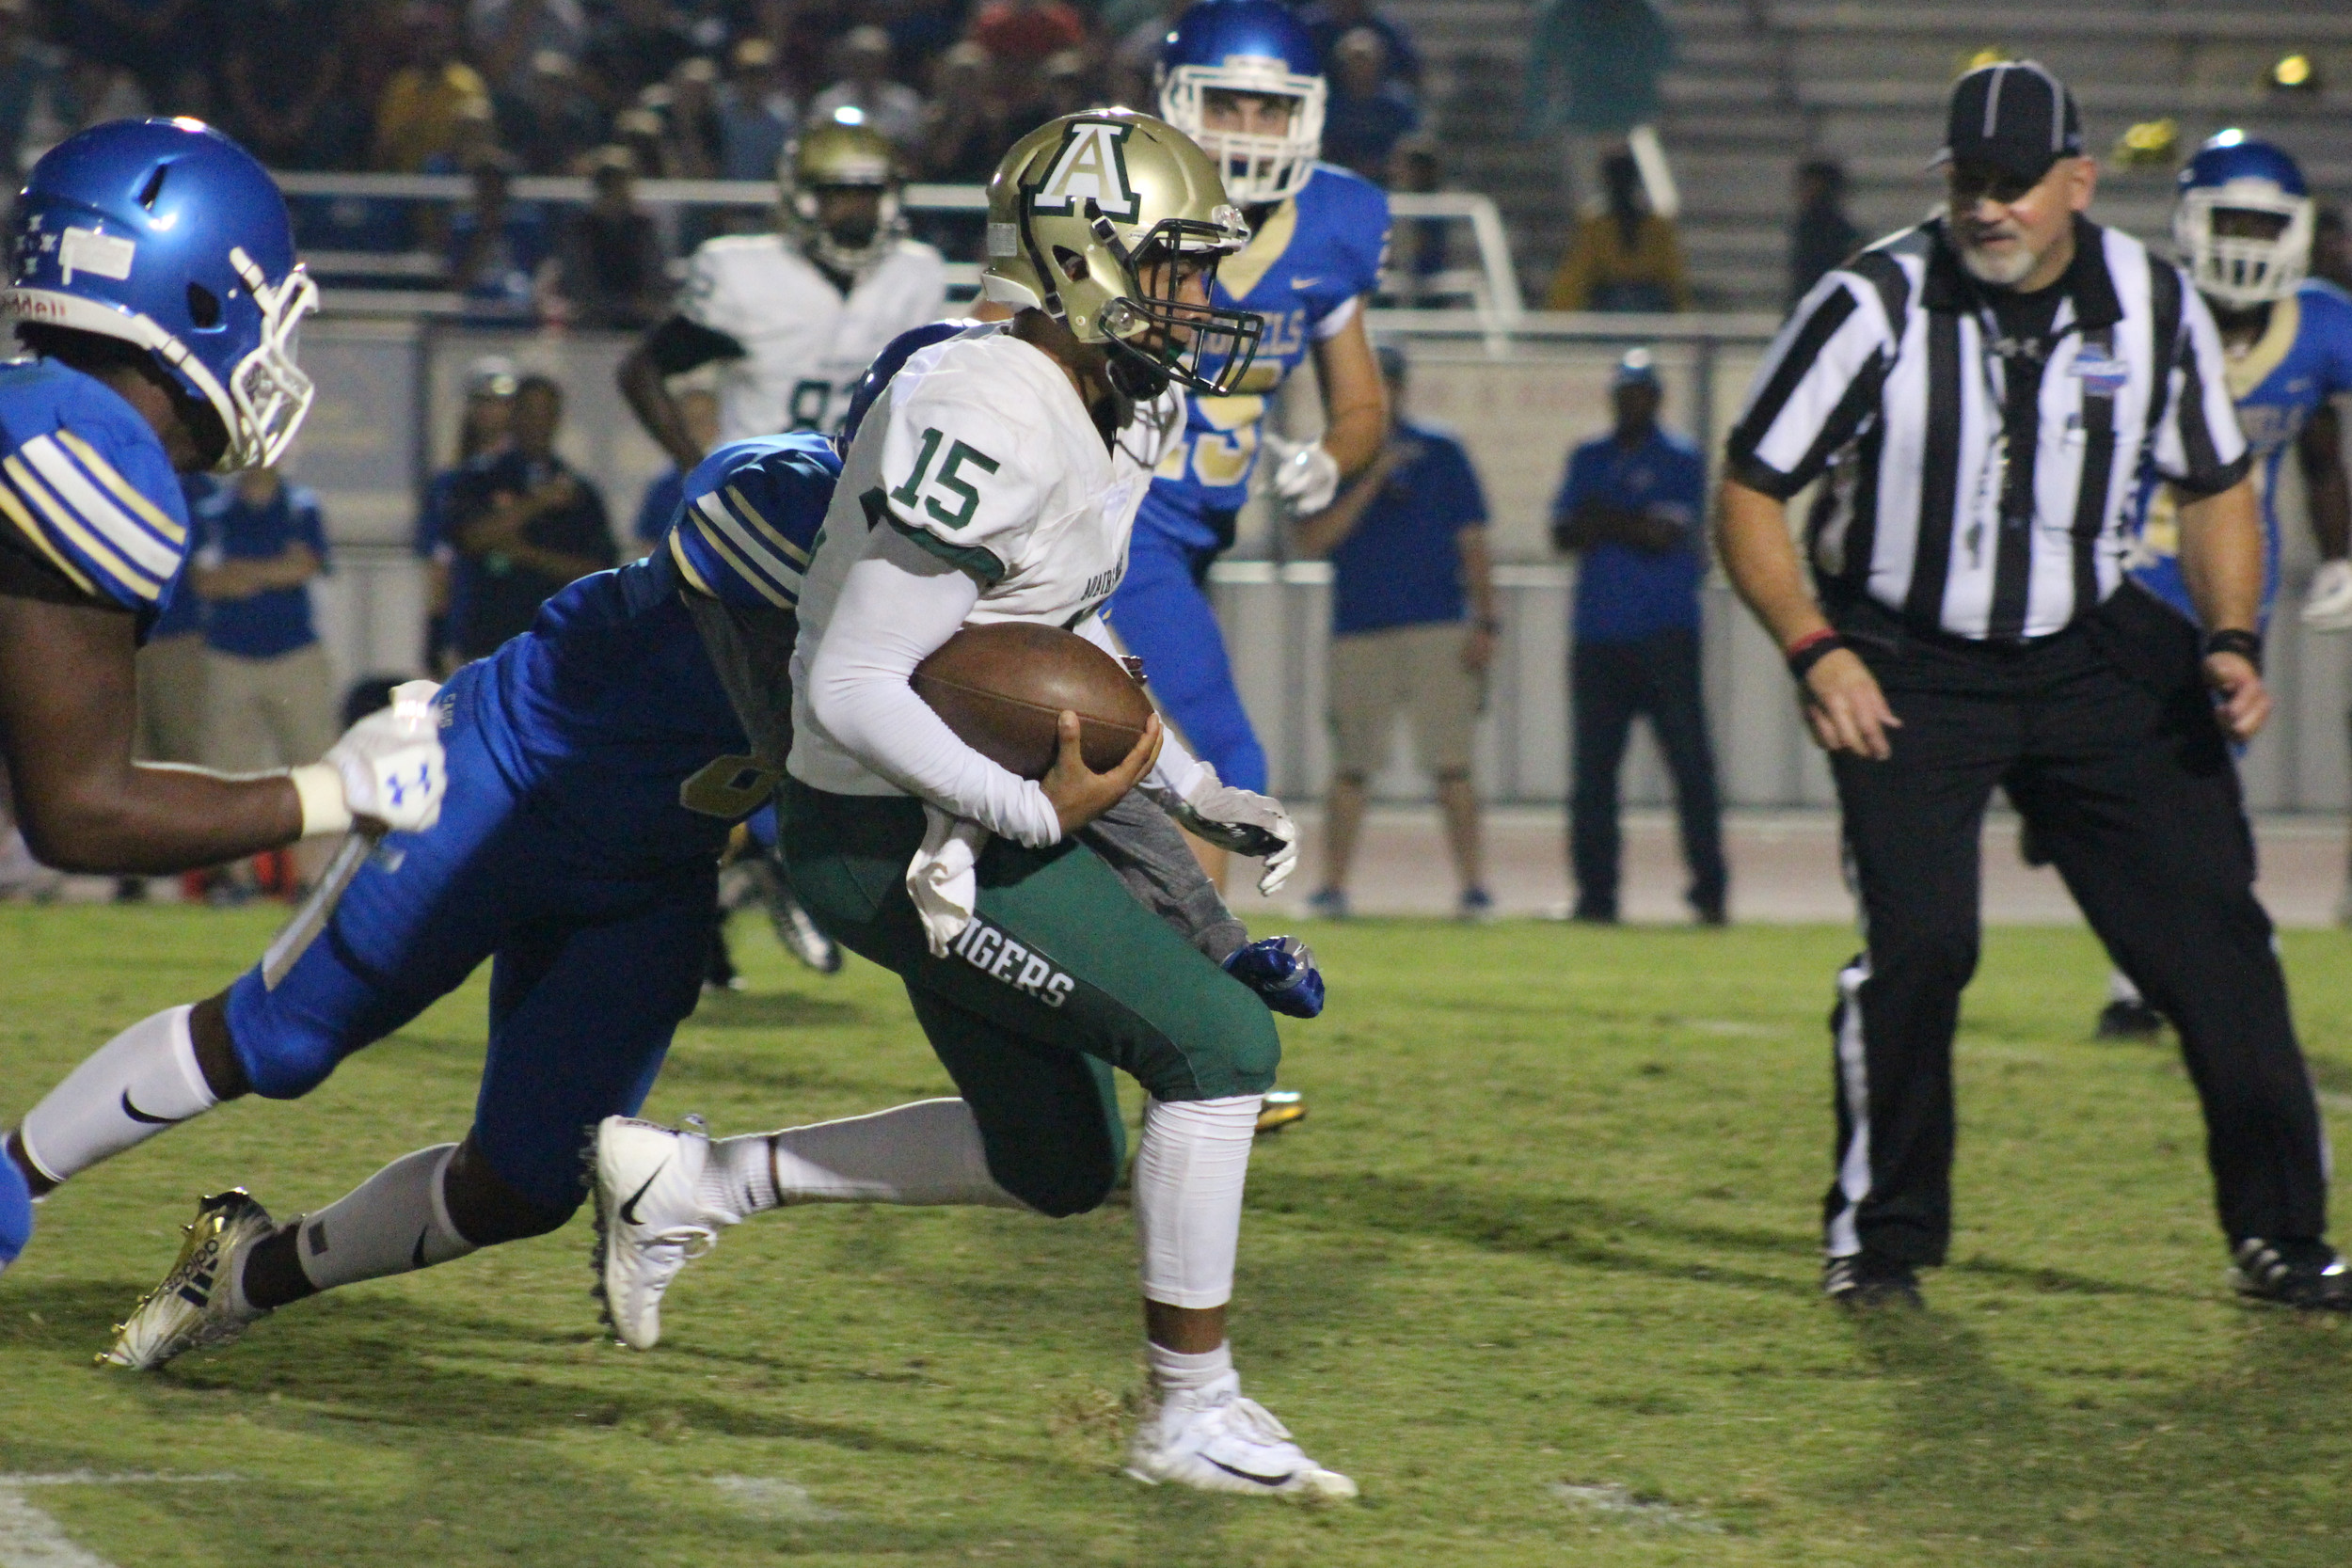 Adairsville junior quarterback Derrick Simmons runs the ball during a game at Cass High on Aug. 24. Simmons and the Tigers will take on Haralson County Friday in Tallapoosa.